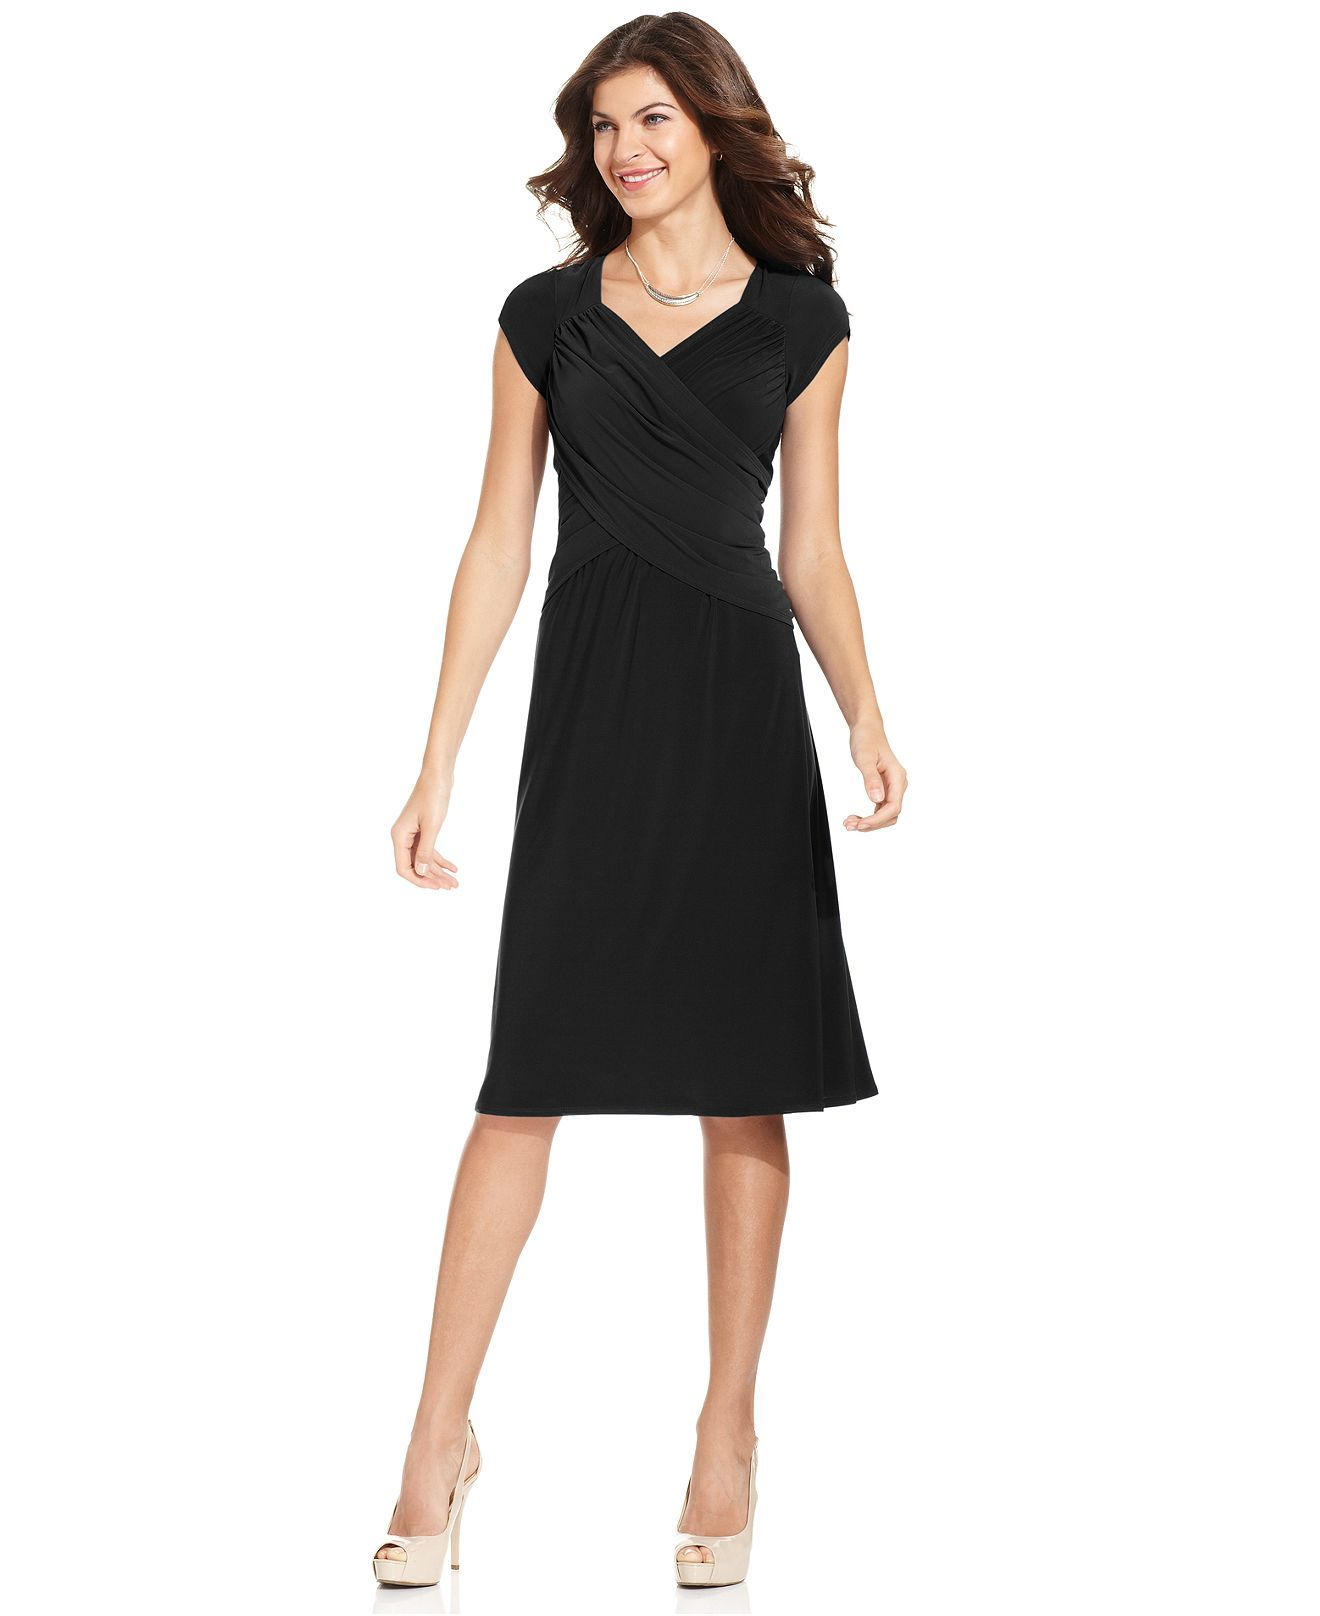 Elementz B-Slim Dress, Short-Sleeve A-Line - Knee Length Dresses - Macy's